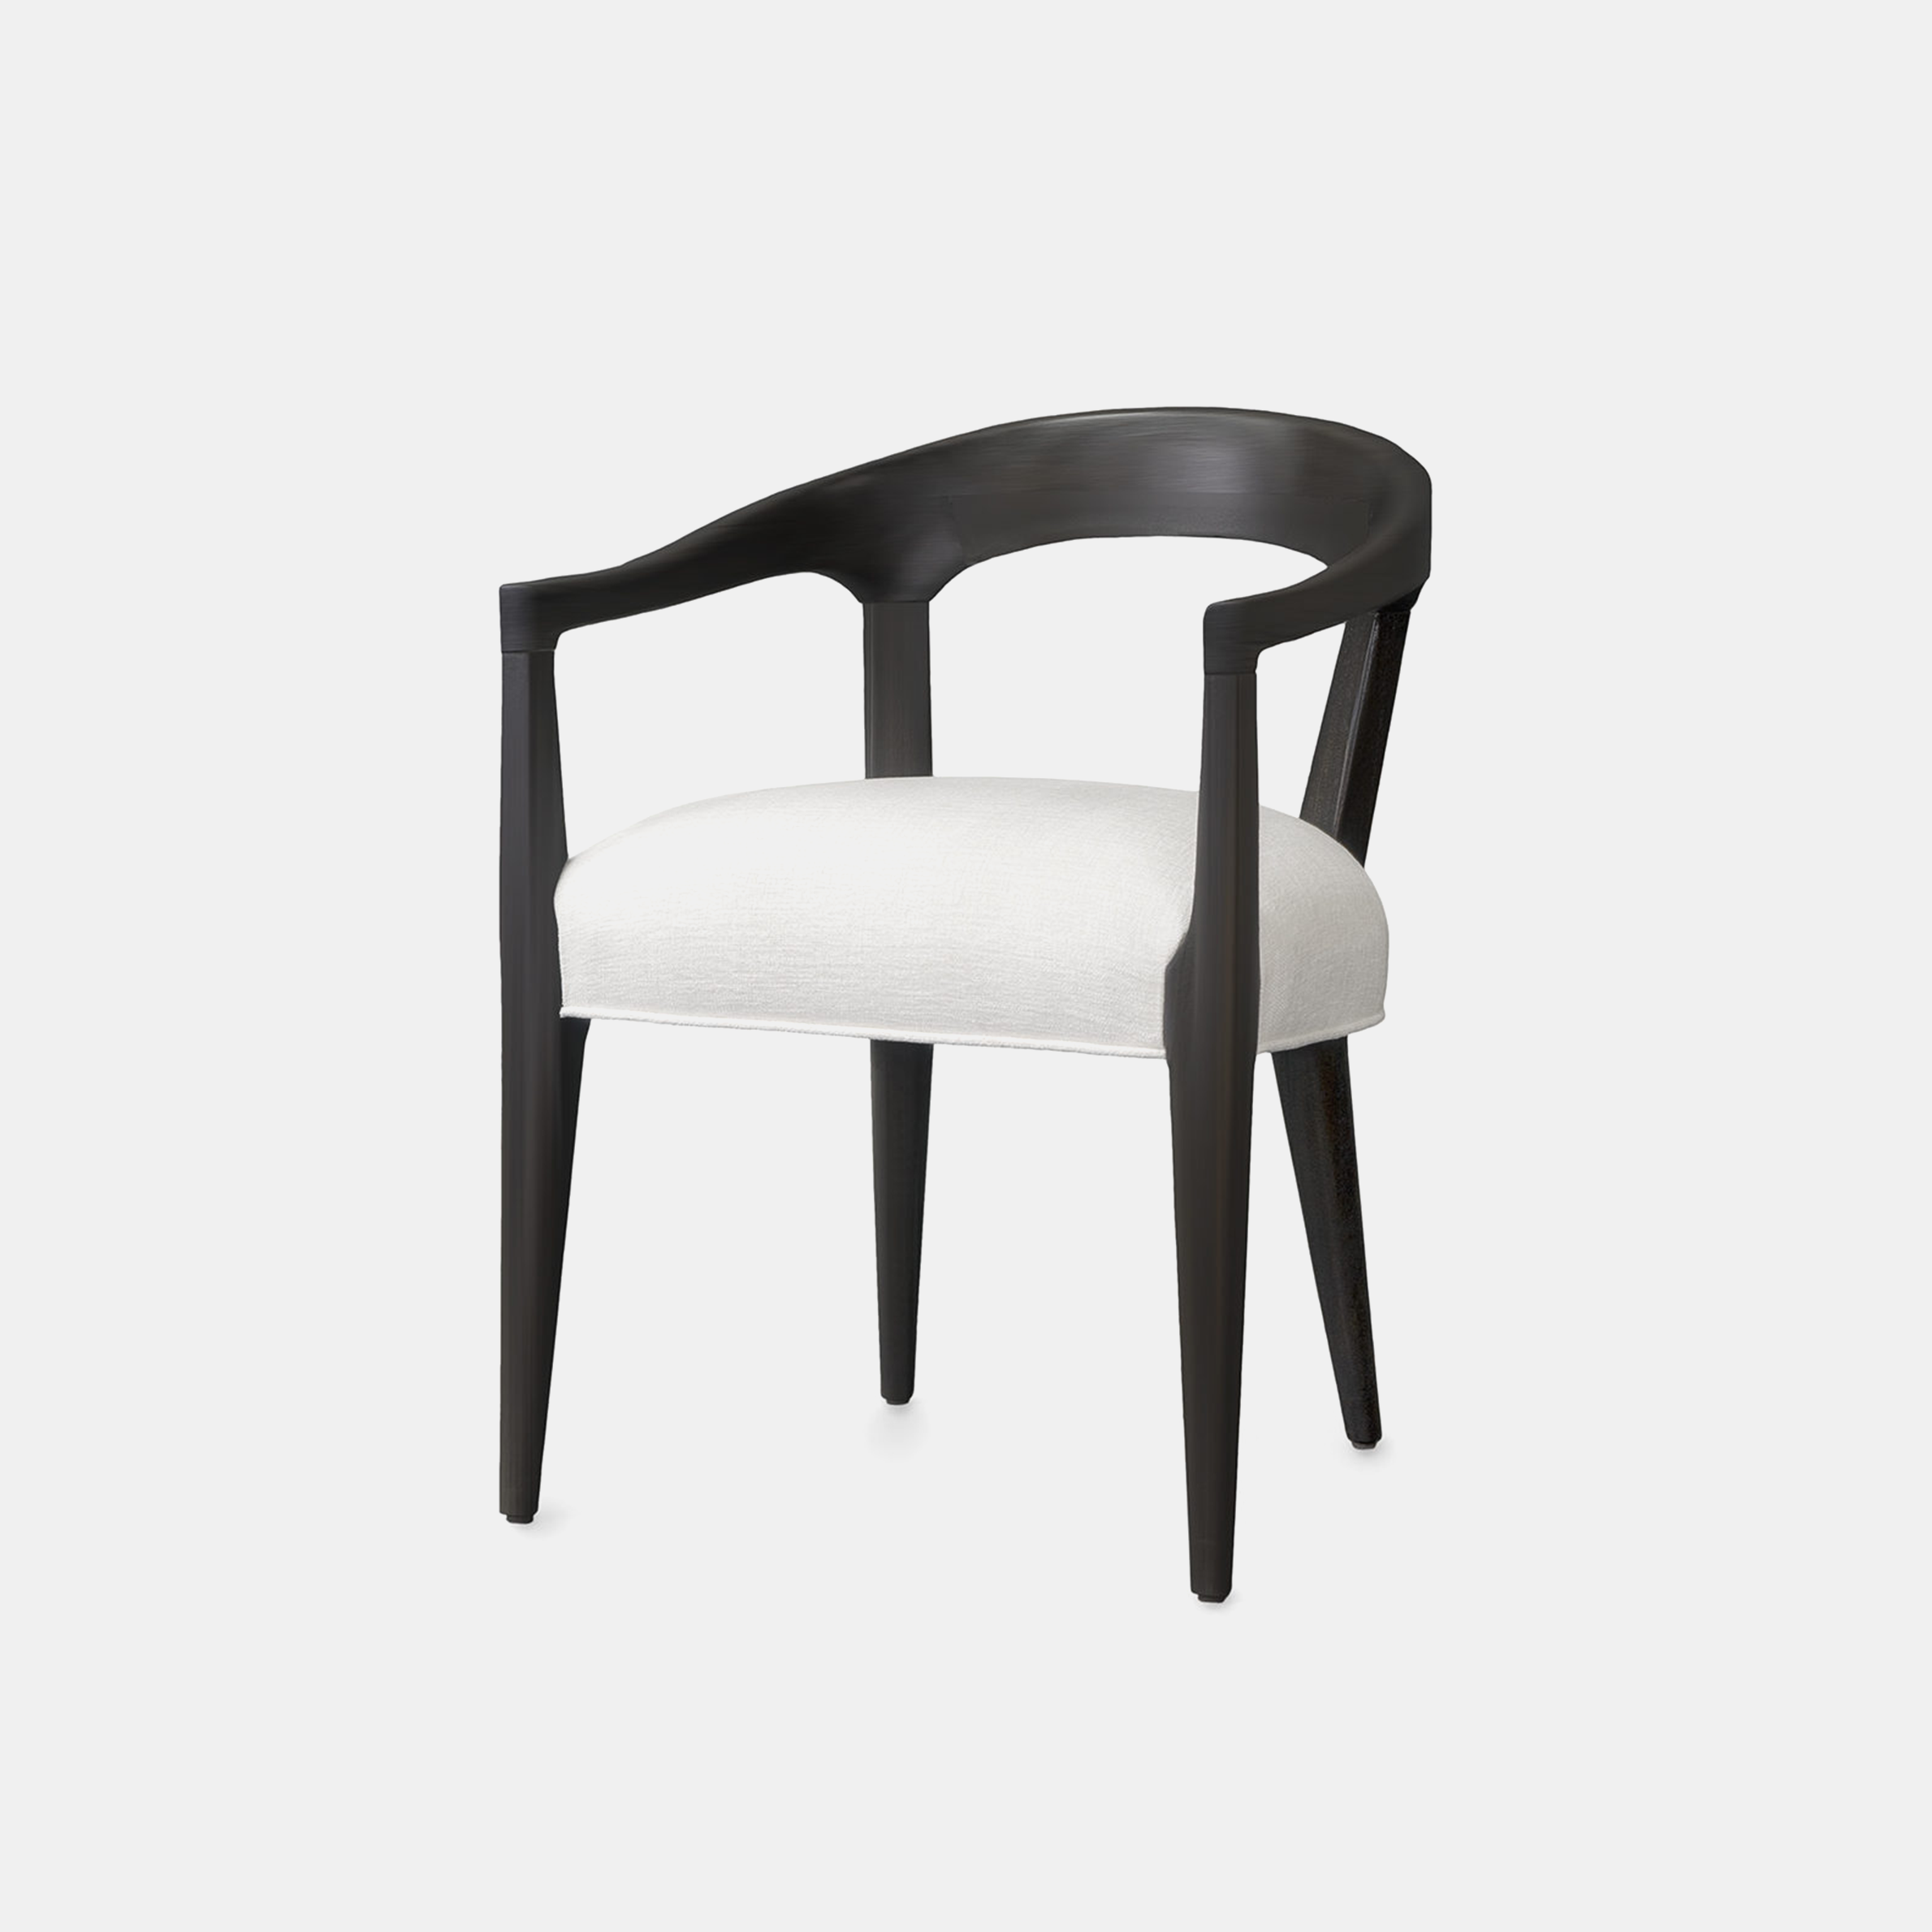 "Irwin Chair  22""w x 24.5""d x 30.75""h SKU985PLK"